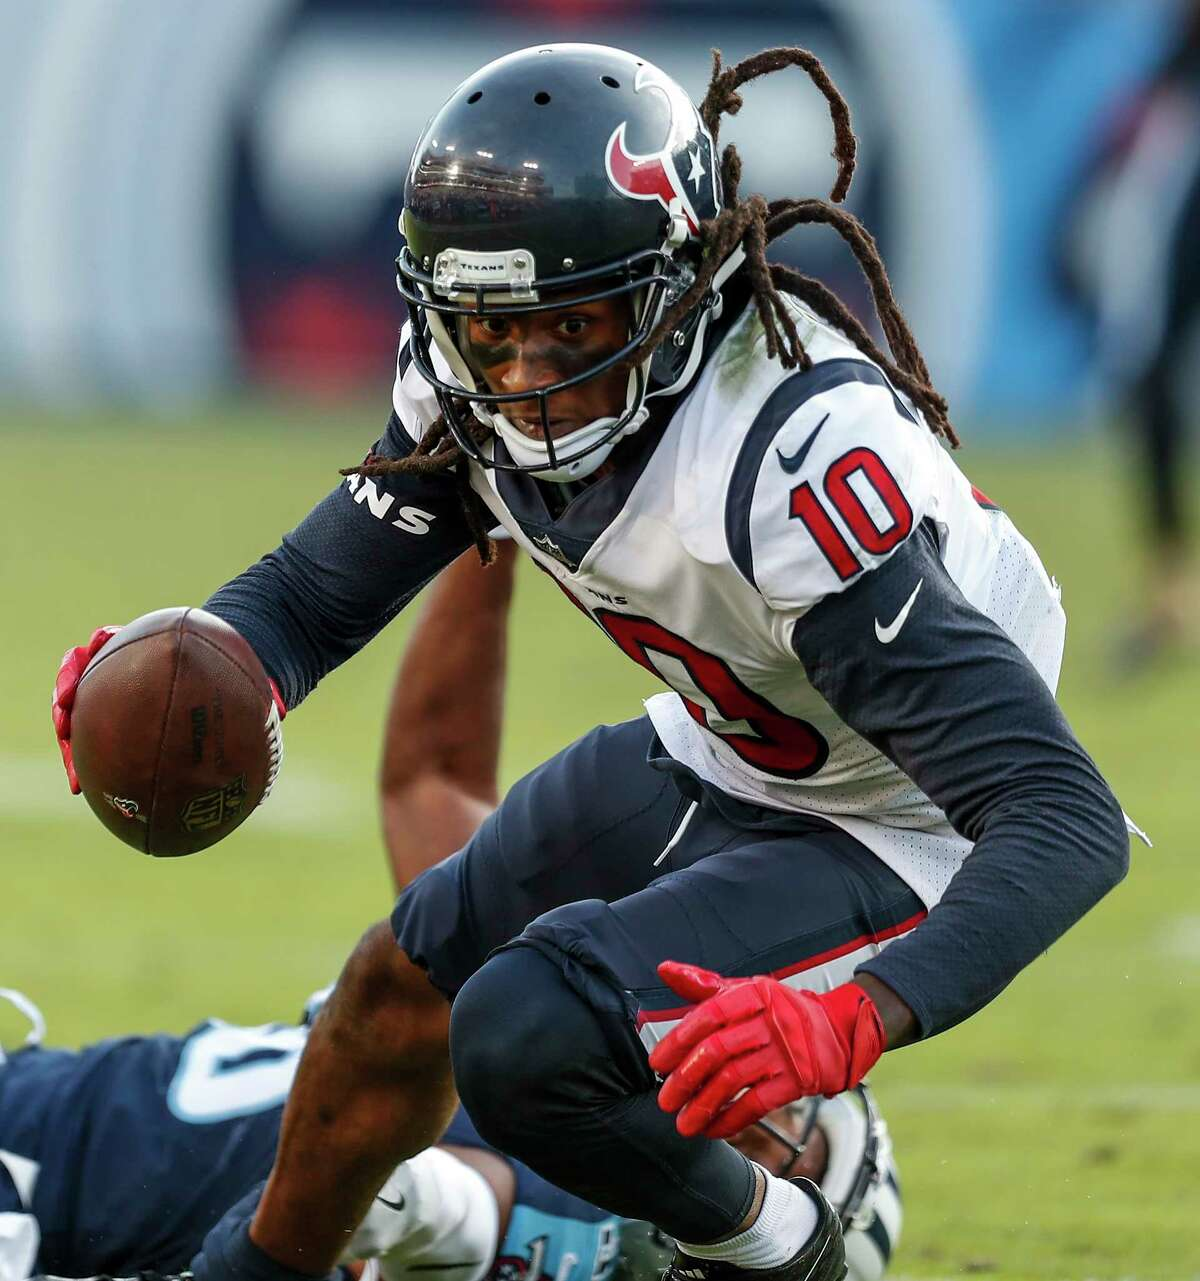 Houston Texans wide receiver DeAndre Hopkins (10) turns upfield after making a catch against the Tennessee Titans during the fourth quarter of an NFL football game at Nissan Stadium on Sunday, Dec. 3, 2017, in Nashville. ( Brett Coomer / Houston Chronicle )